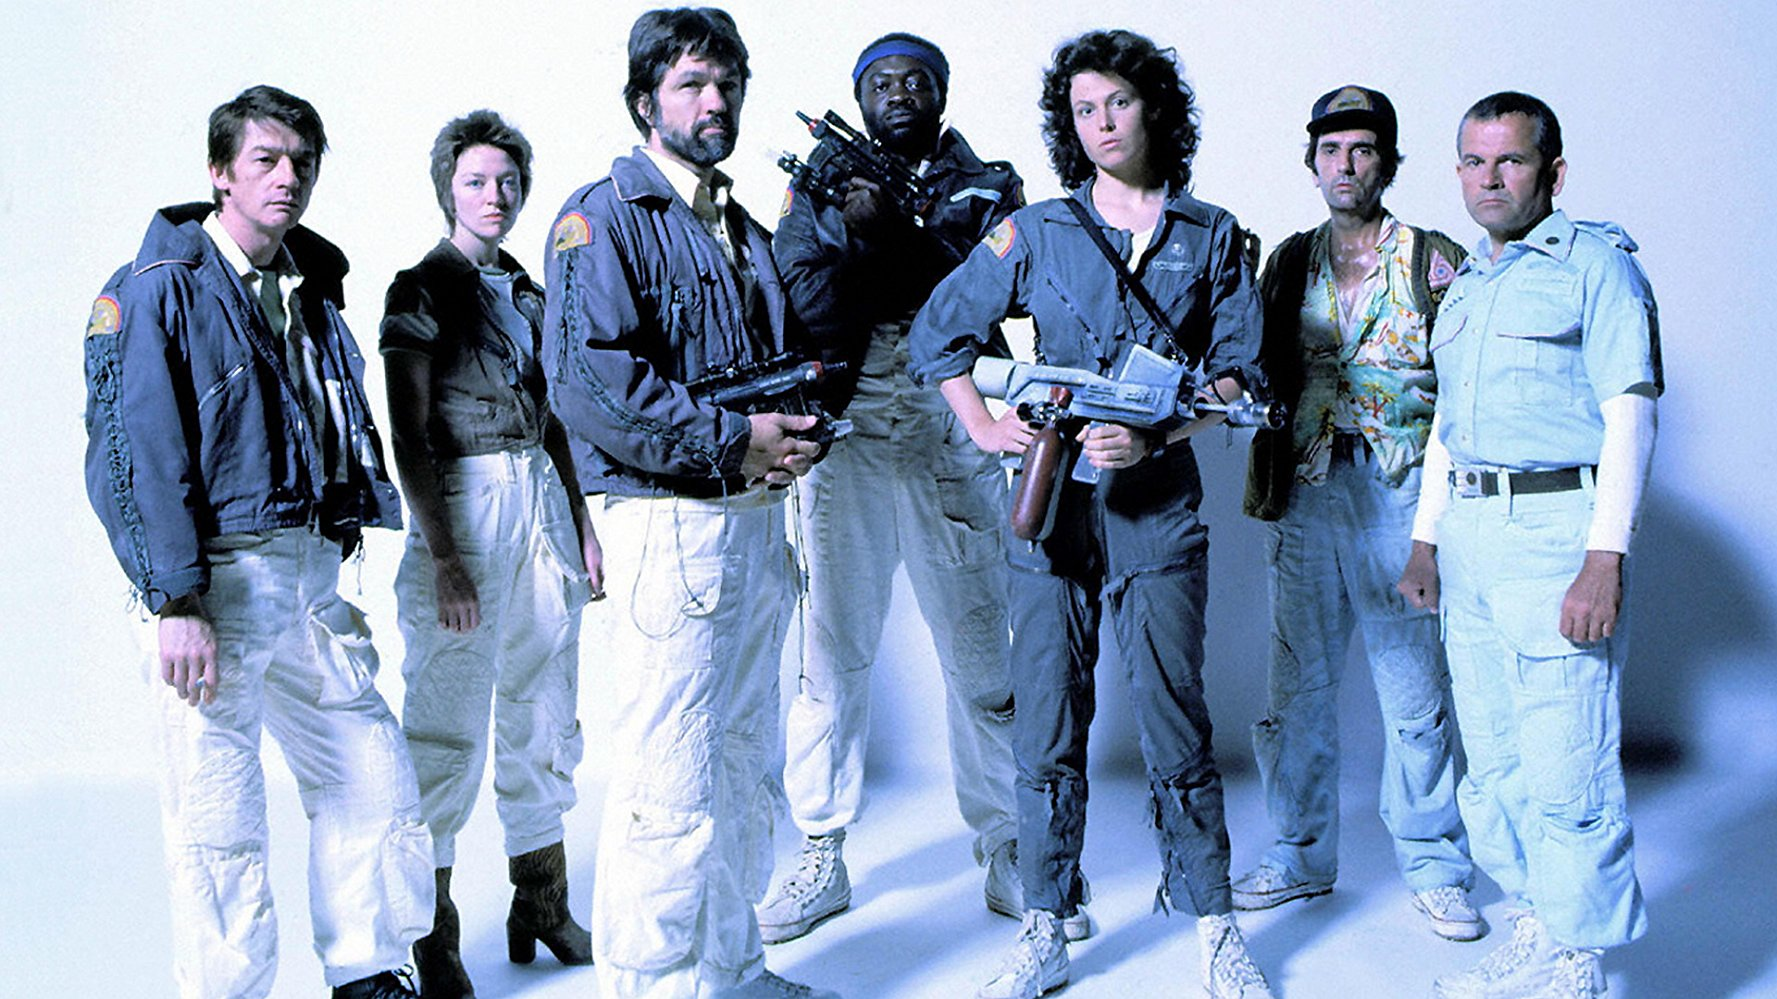 Tom Skerritt with other actors from the movie Alien